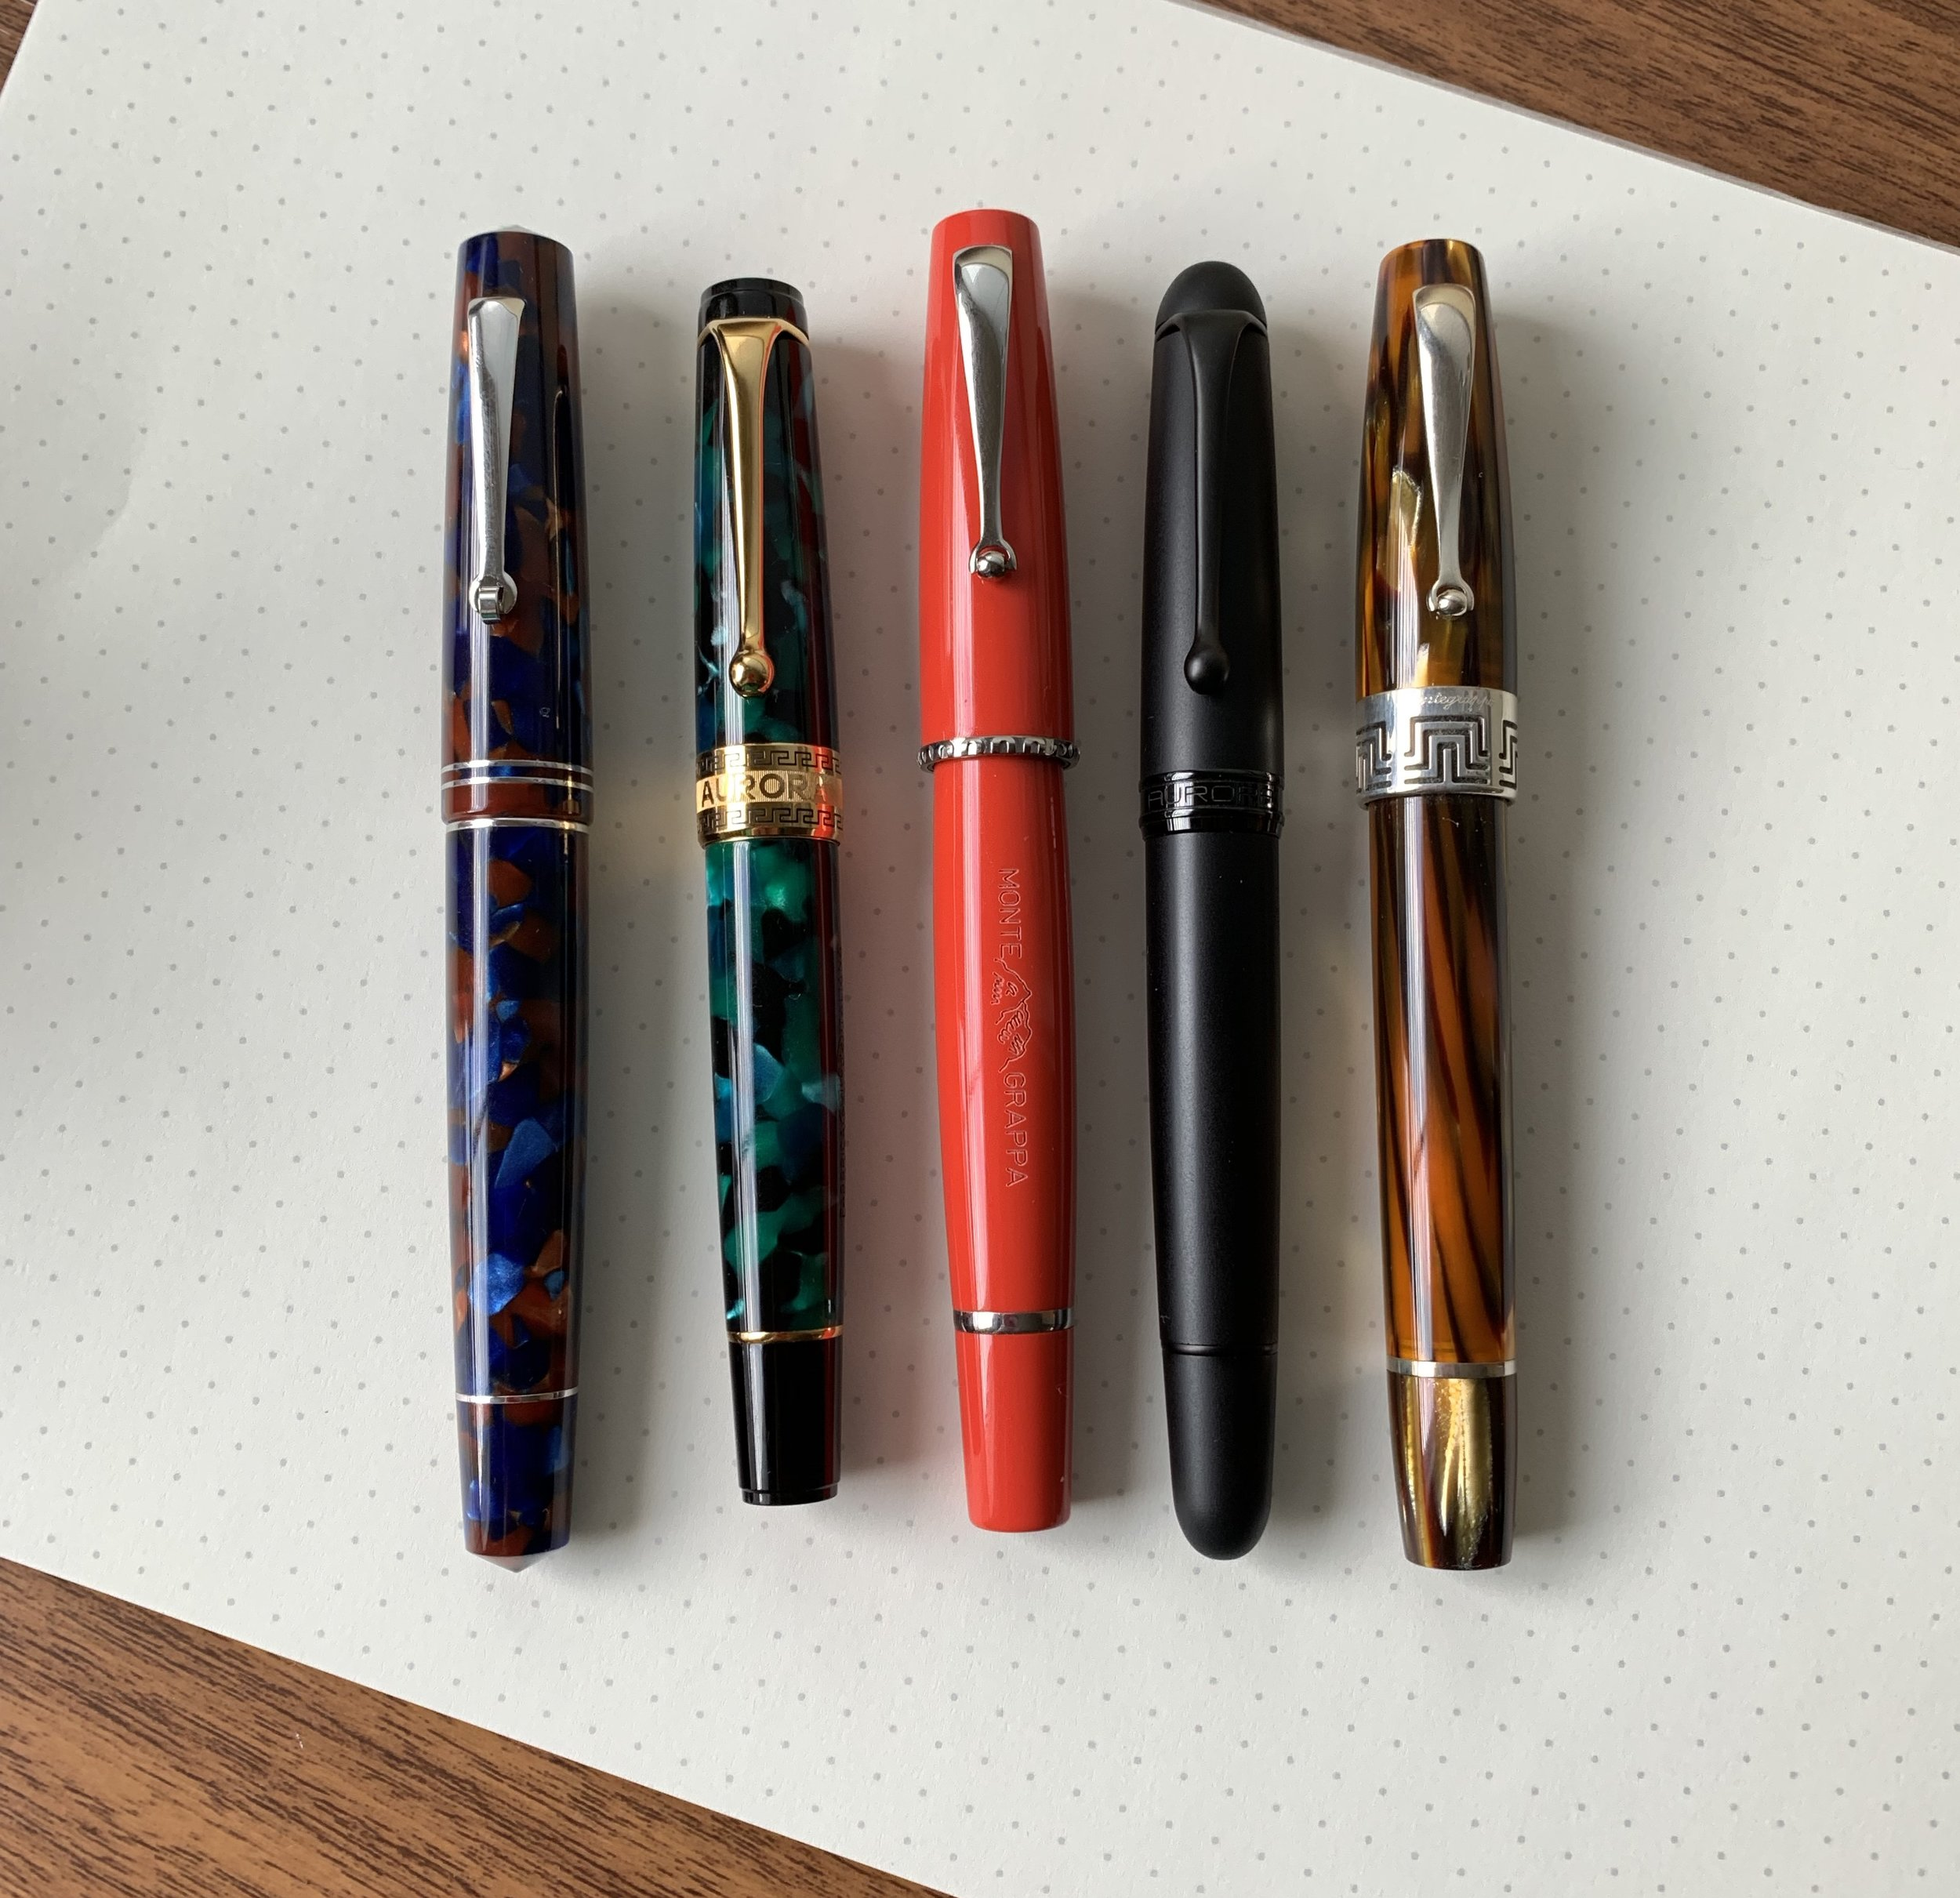 I'm really on an Italian pens kick right now. Look for more reviews in the coming weeks.